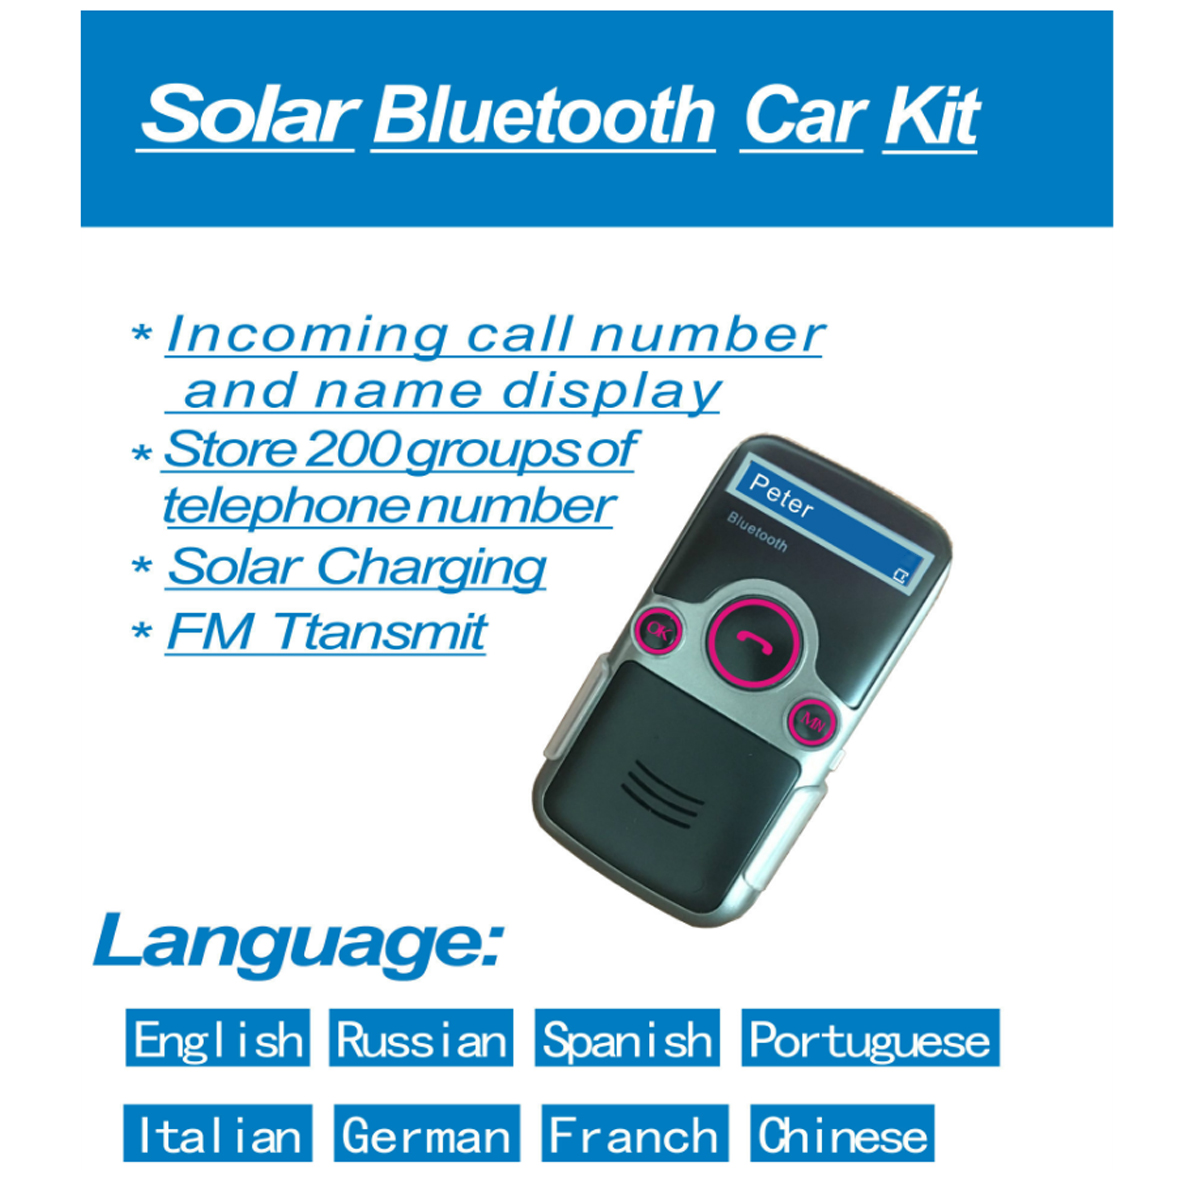 Kit Bluetooth Manos Libres Solar Powered Bluetooth Manos Libres Coche Kit Digtal Lcd